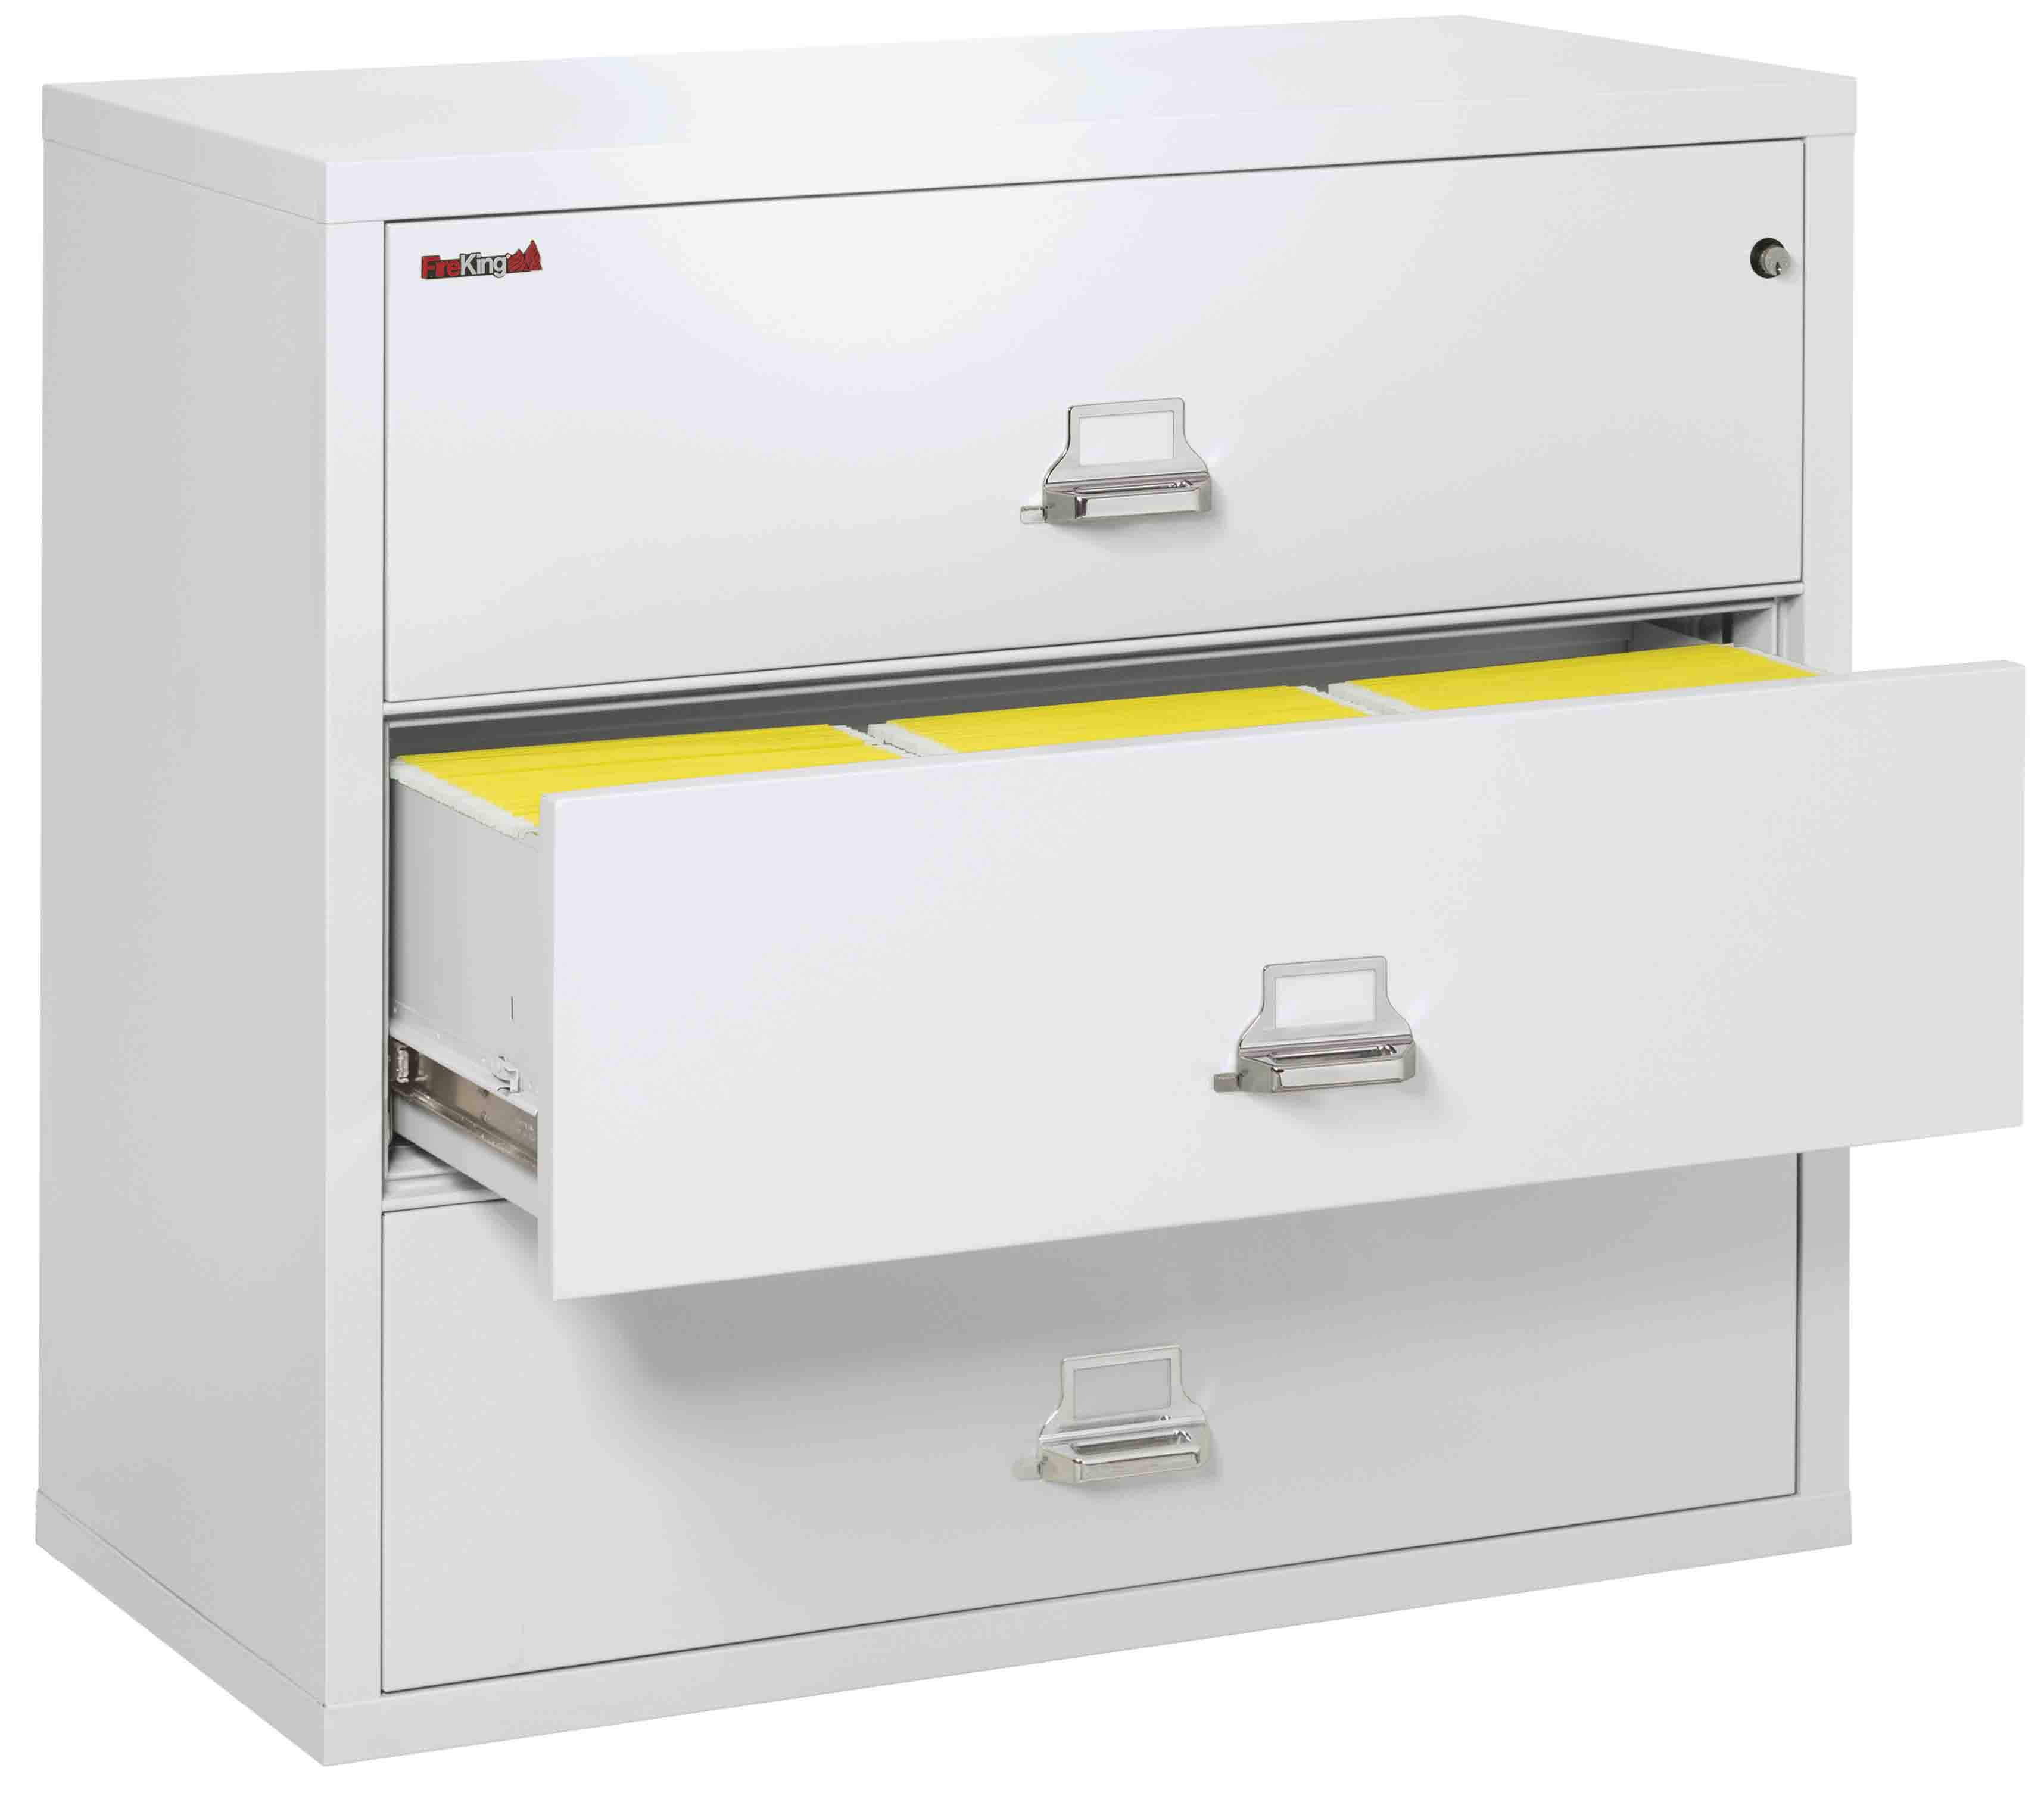 Fire King 3 4422 C   Lateral Fireproof File Cabinets   3 Drawer 1 ...